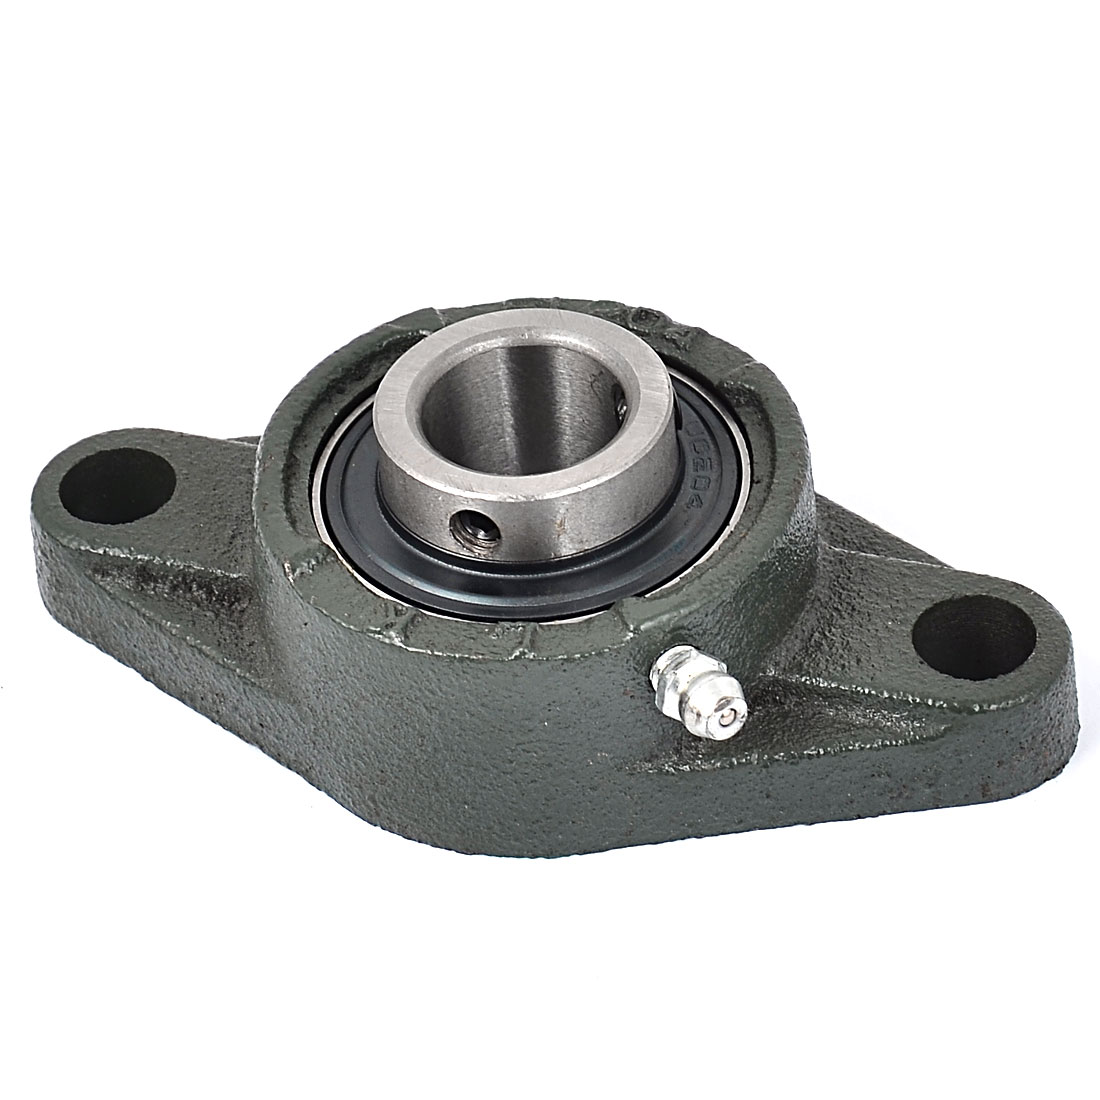 FL204 20mm Bore Dia Self-align Oval Flange Pillow Block Bearing